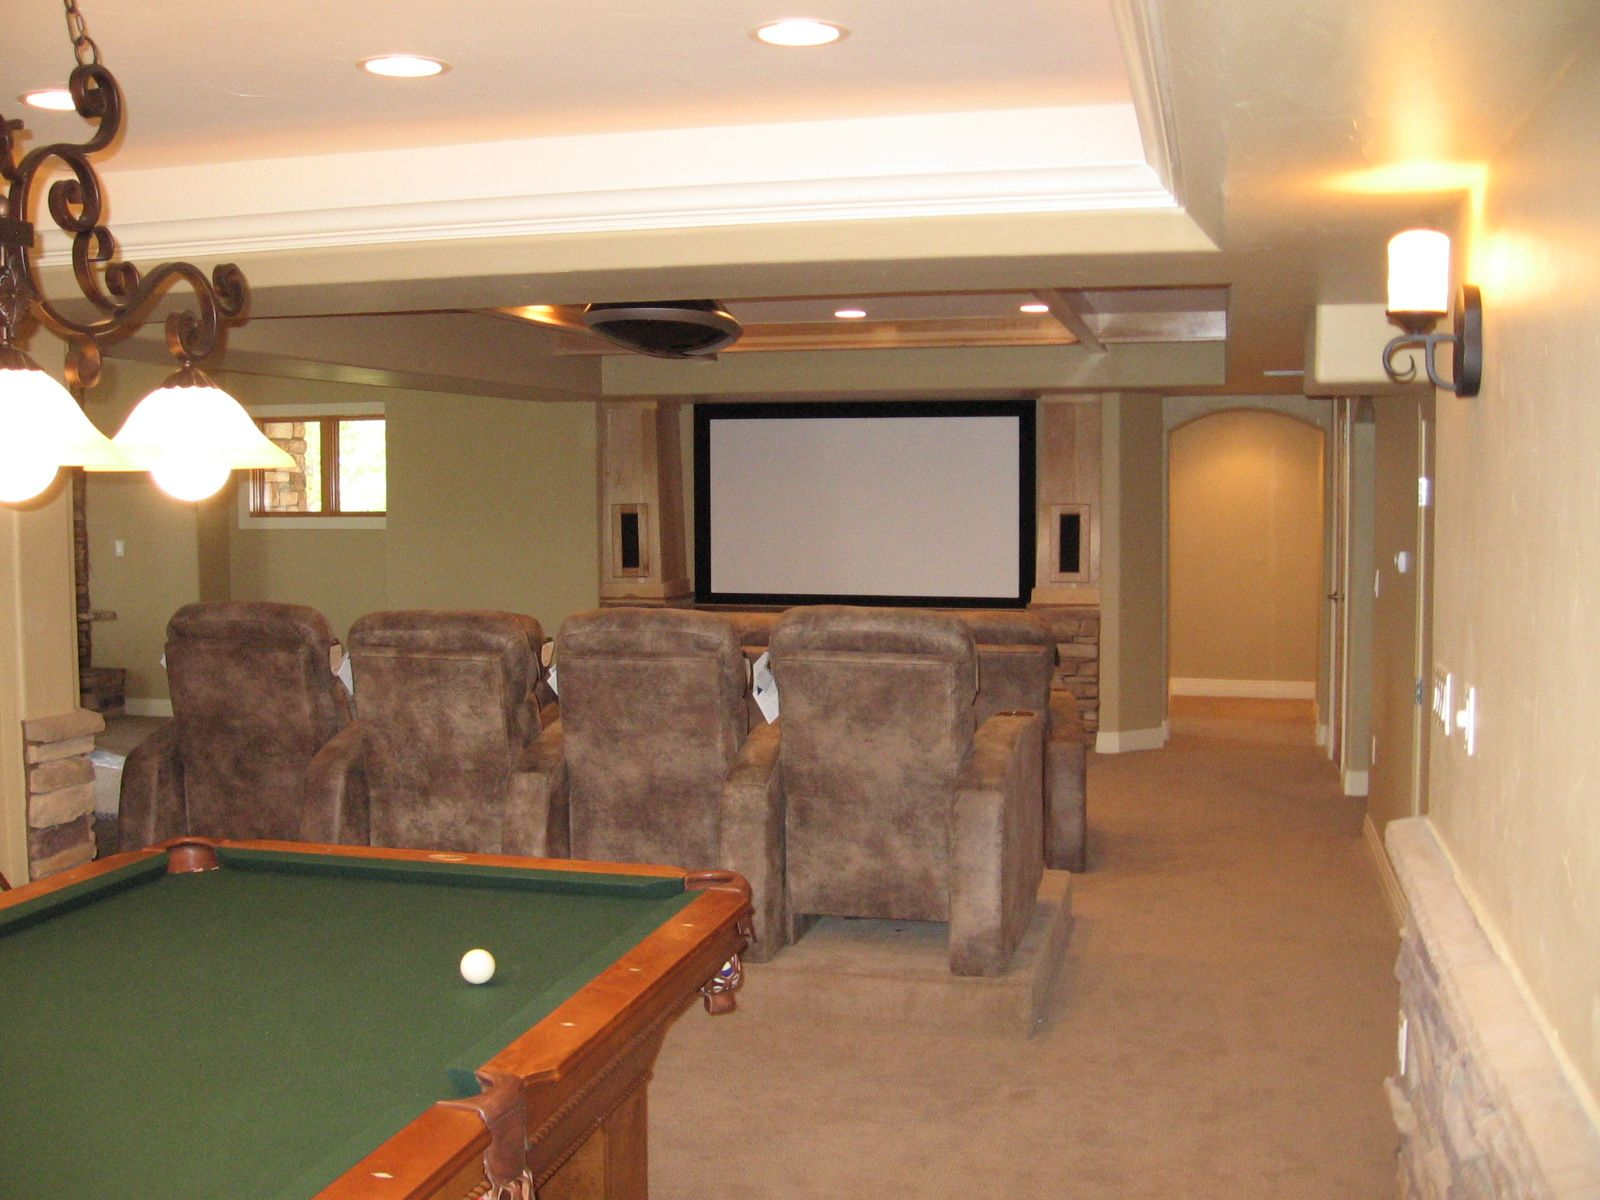 Finished basement ideas basement design basement for House finishing